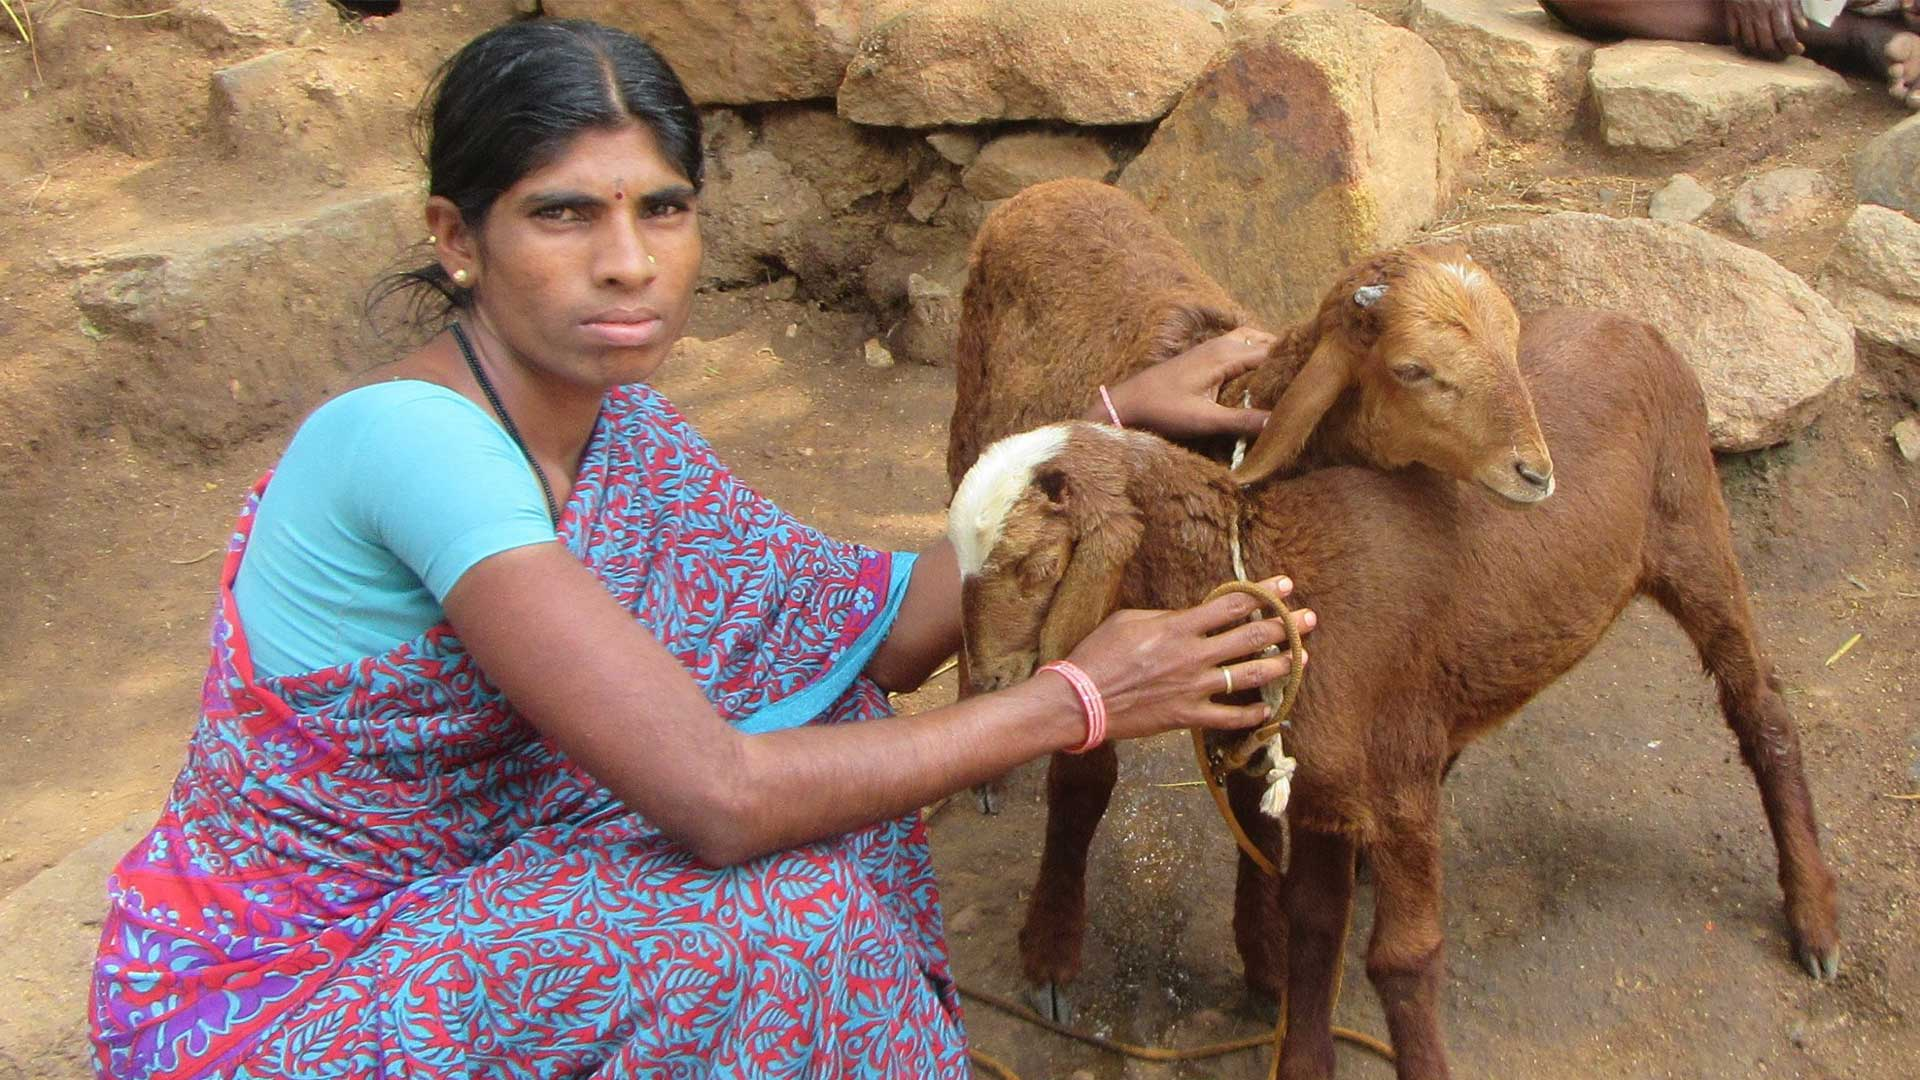 Female carer with her two goats in India